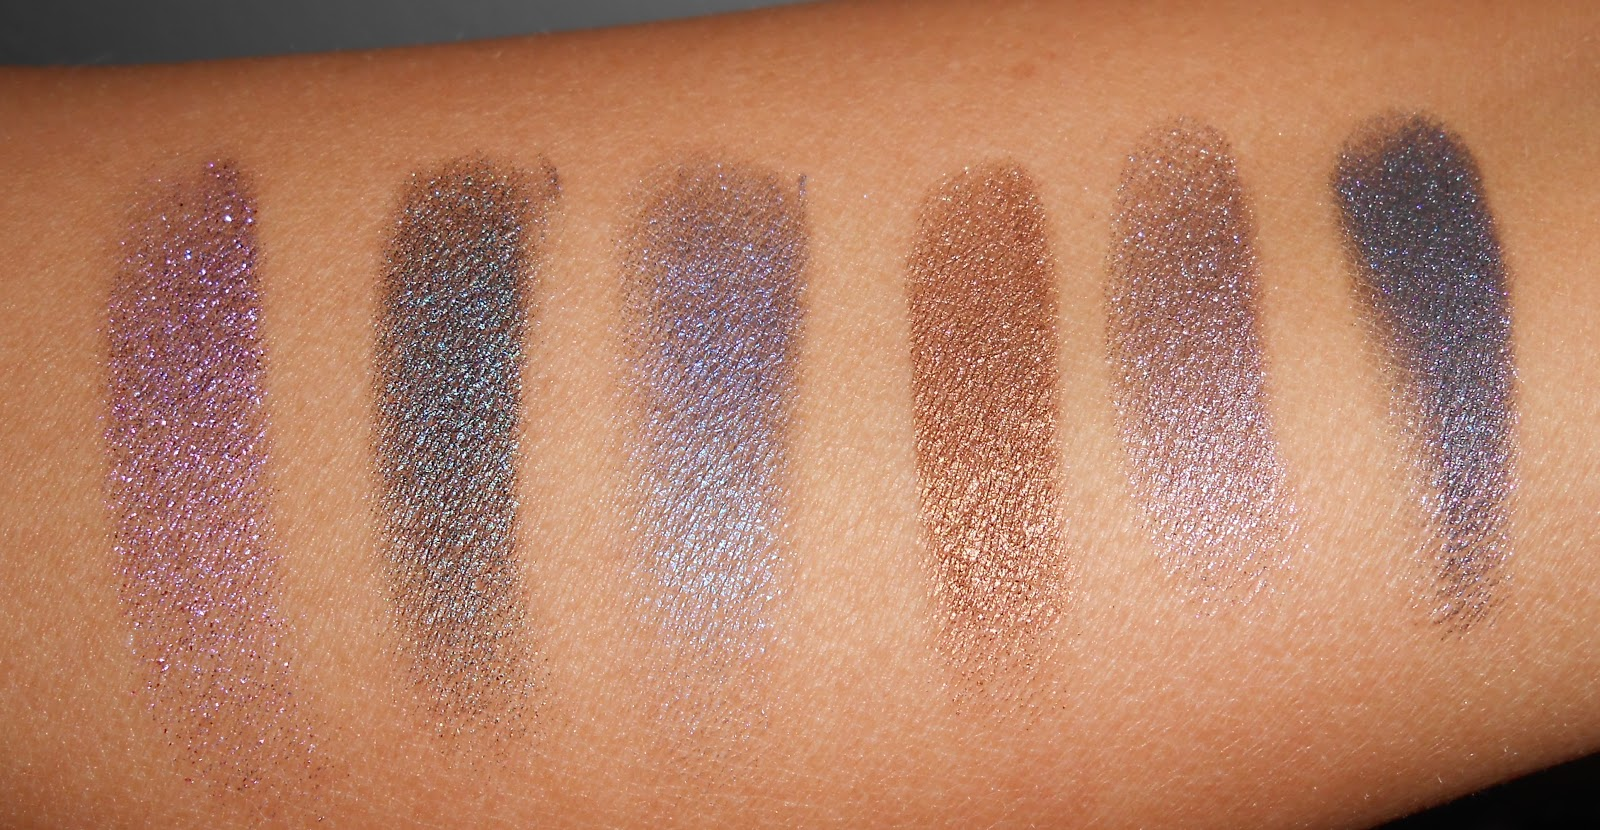 Ace is a charcoal shade but looks almost like a really deep teal when